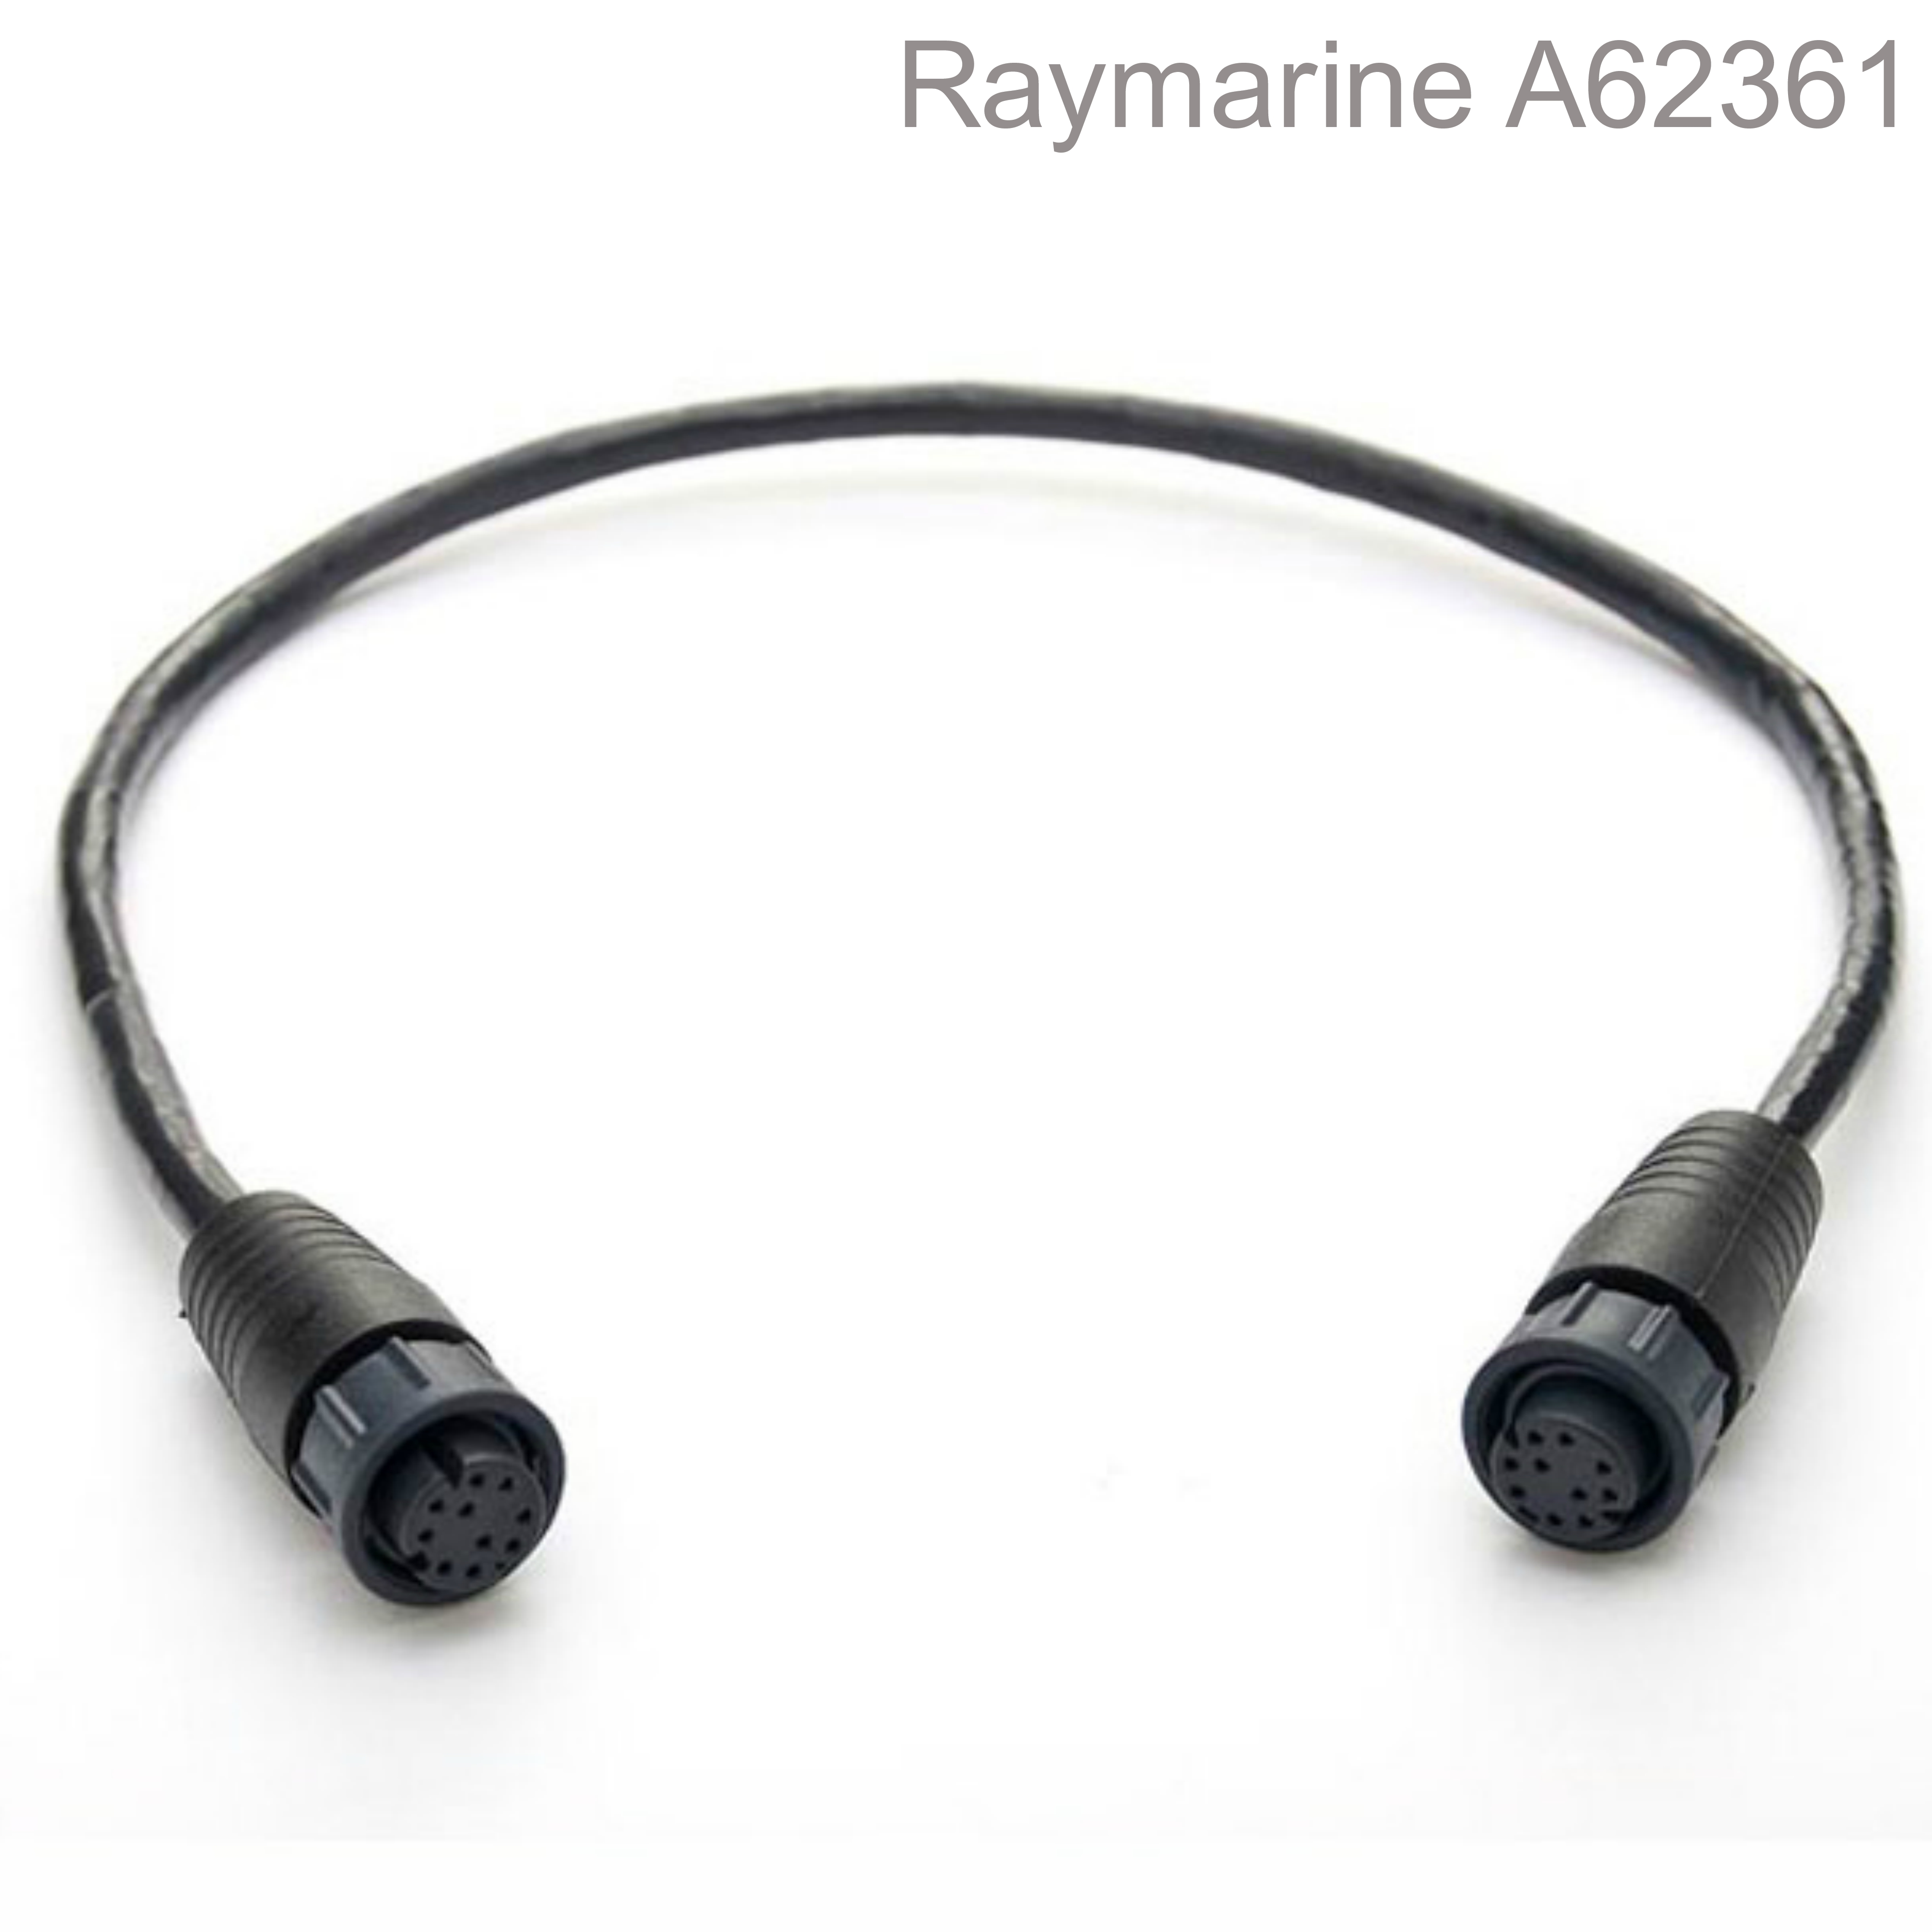 Raymarine-A62361|RayNet to RayNet Cable|2m|Female To Female|For Marine & Boats